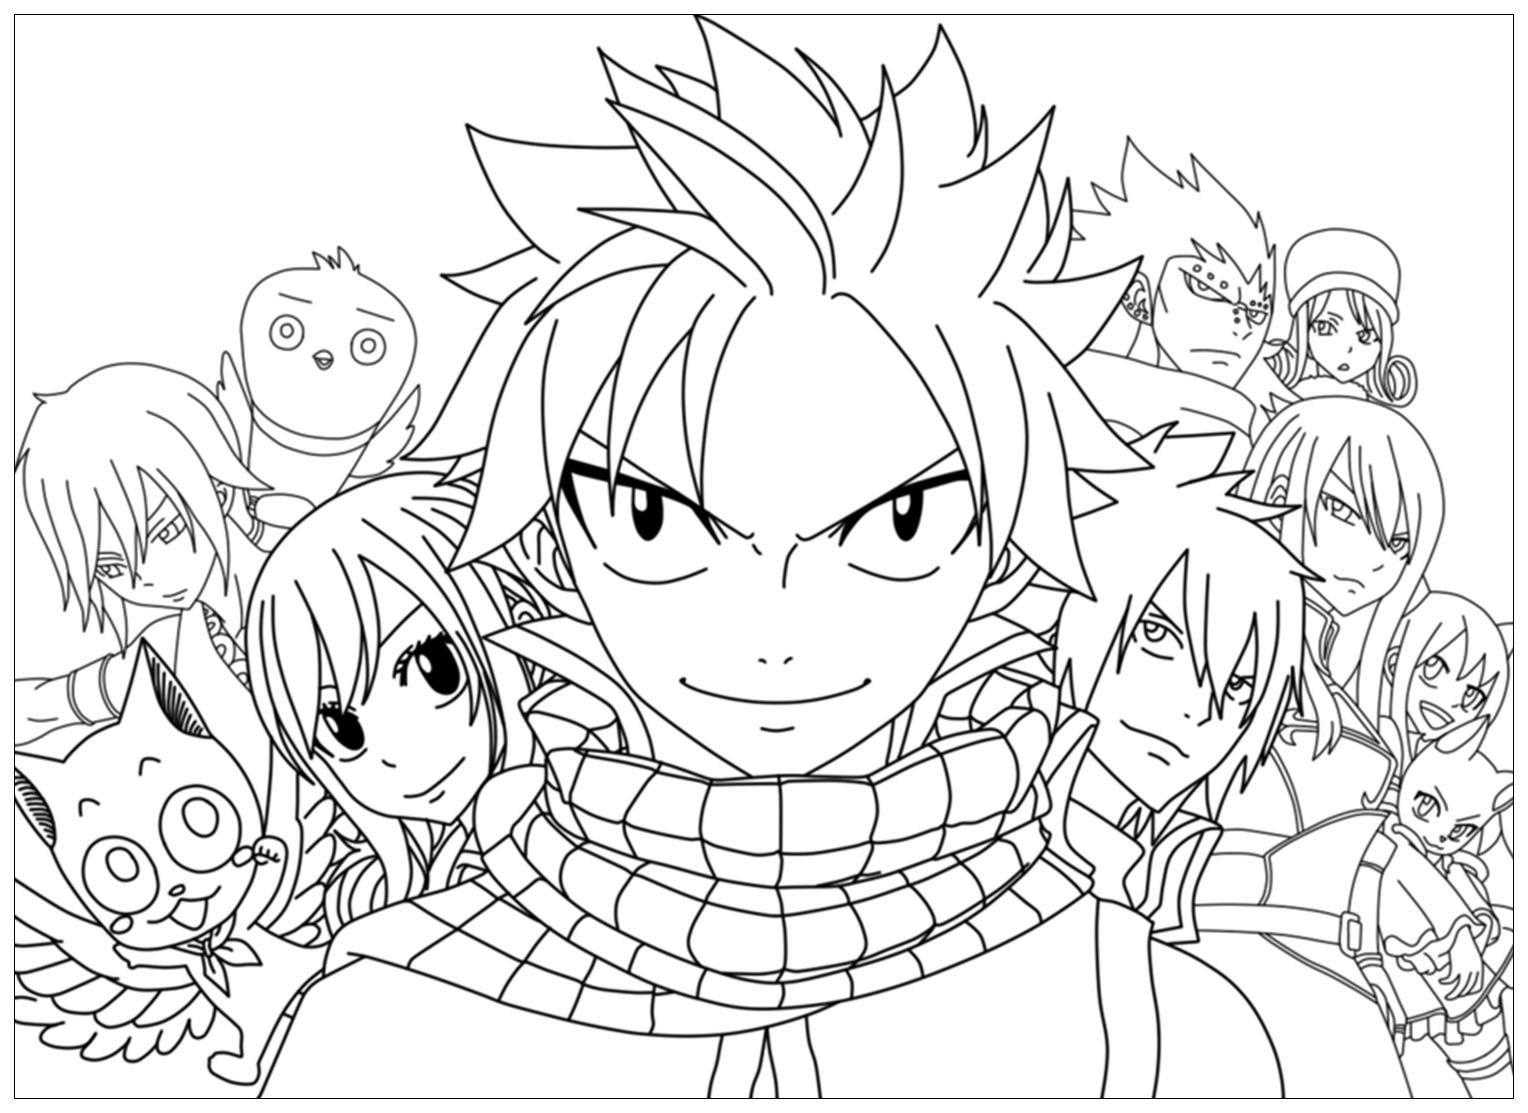 Free Fairy tail coloring page to print and color, for kids